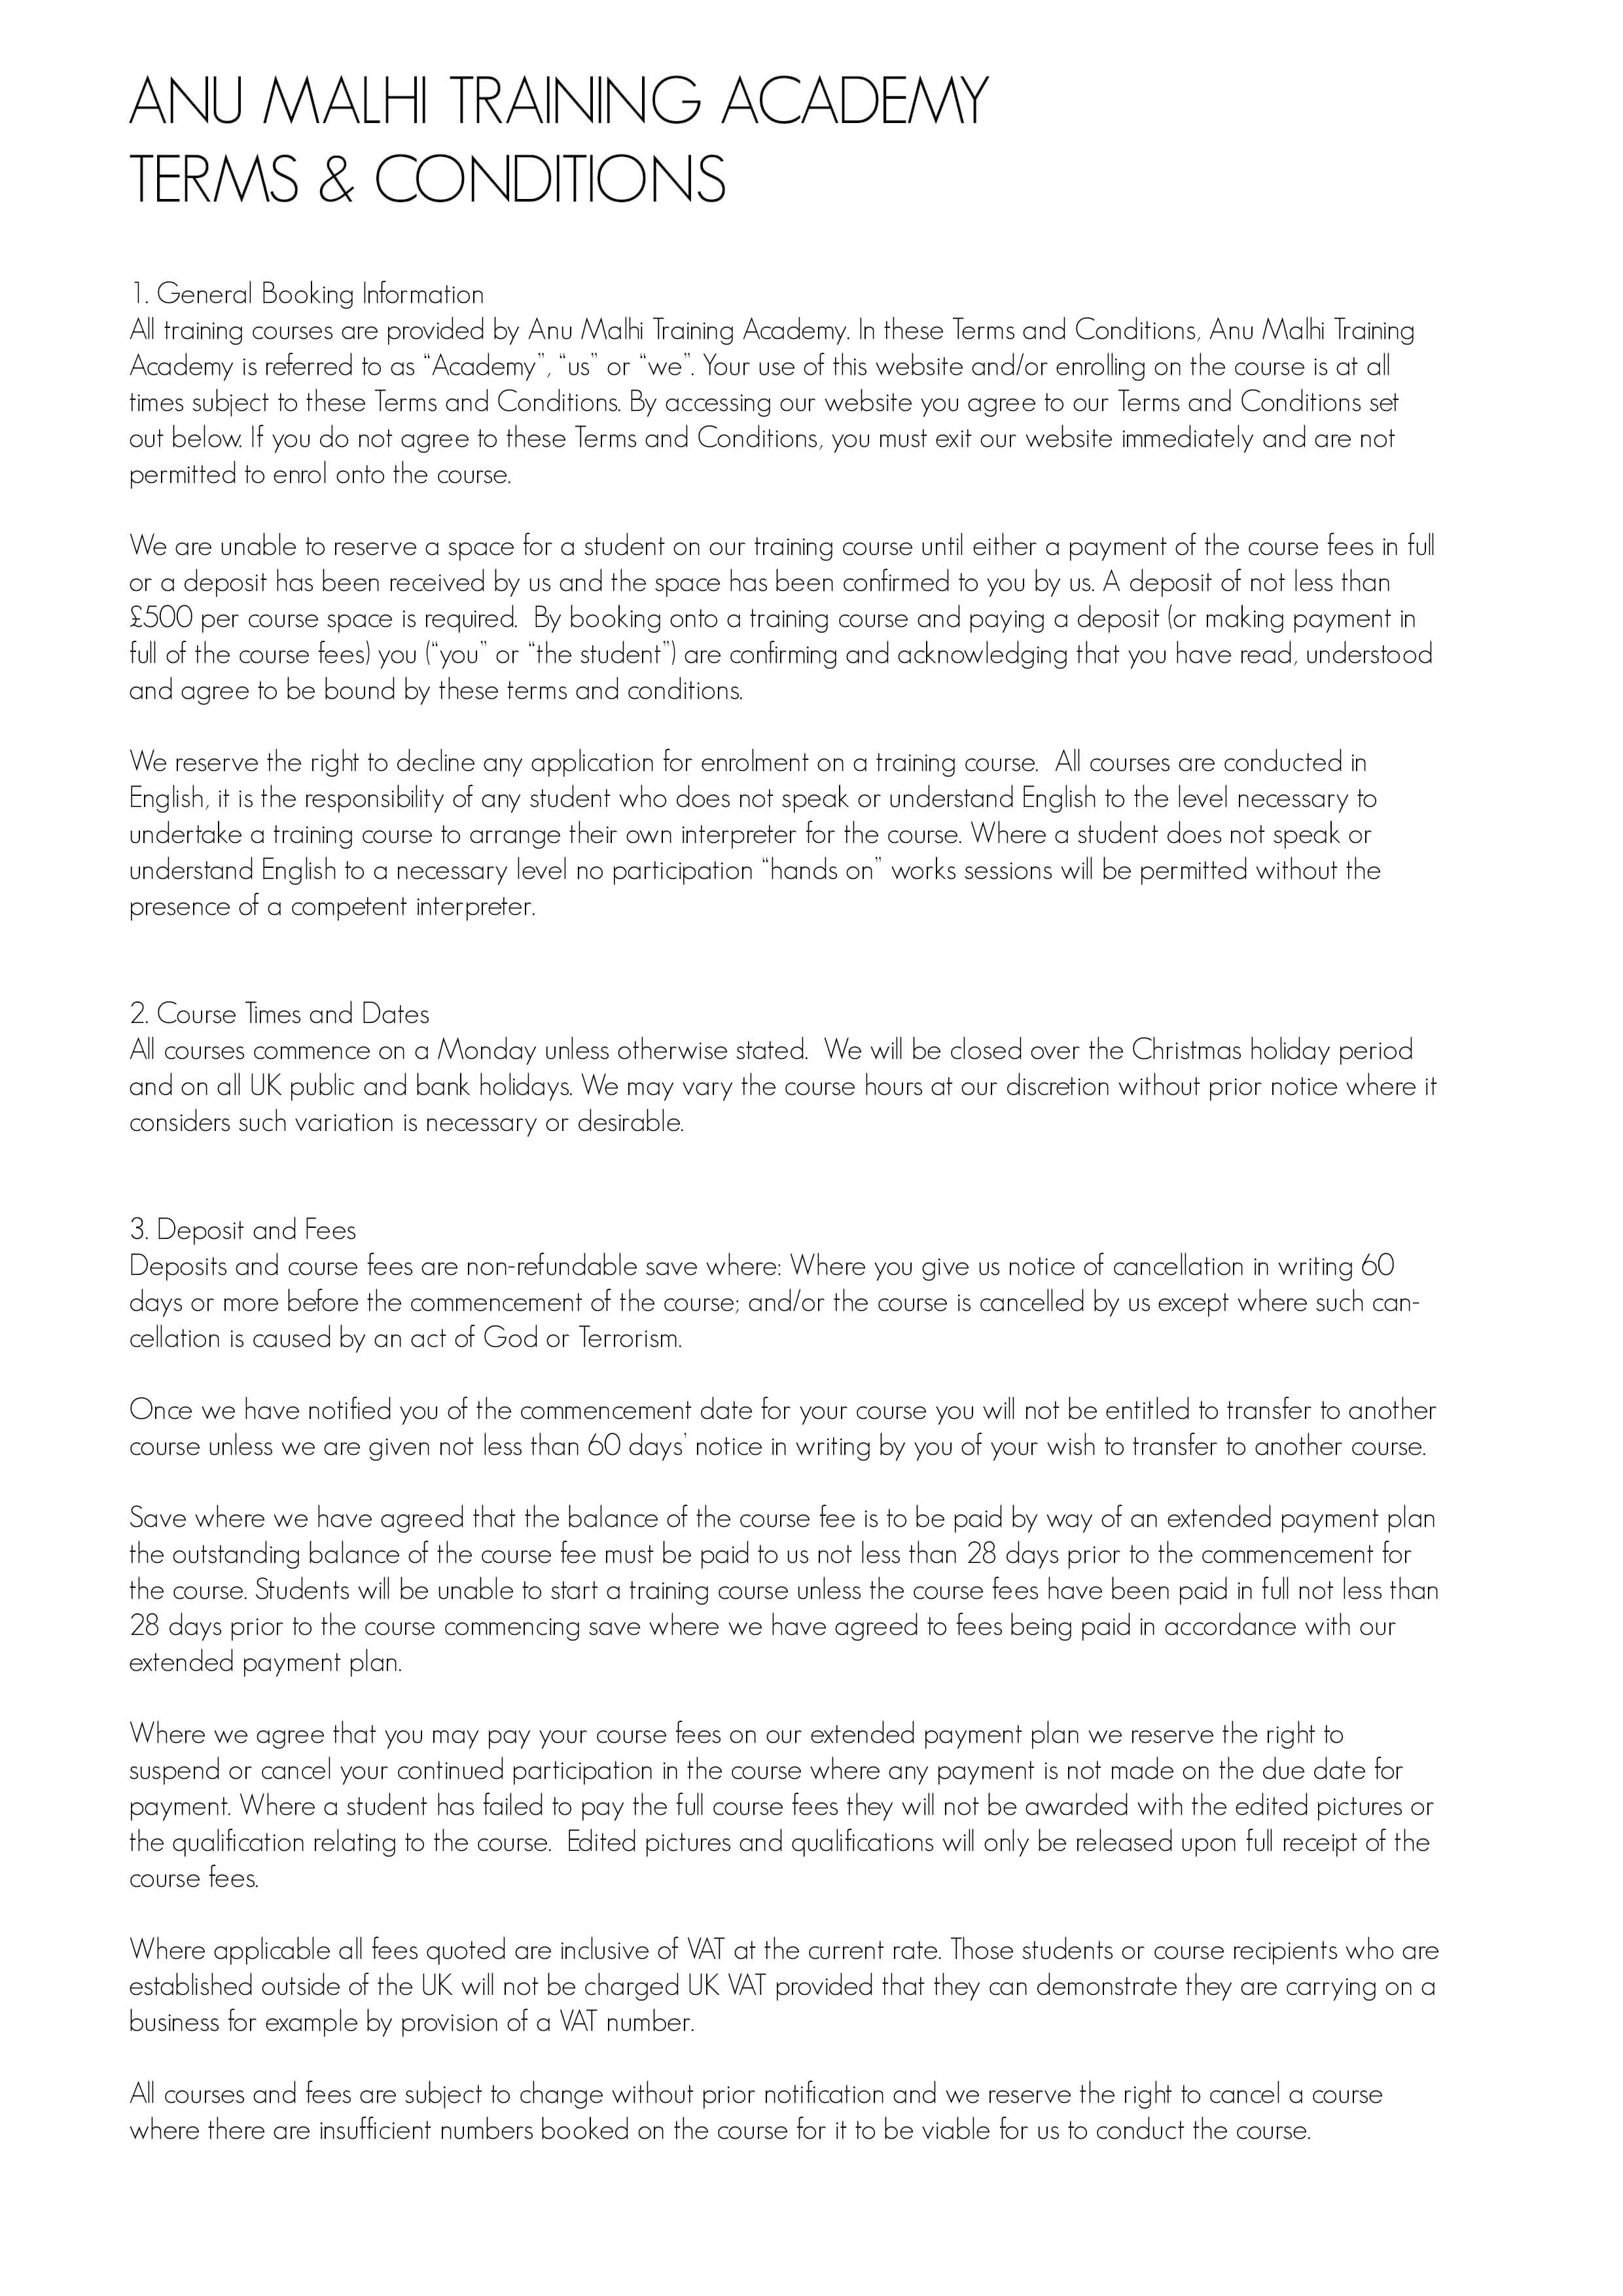 Terms & Conditions (page 1 of 2)